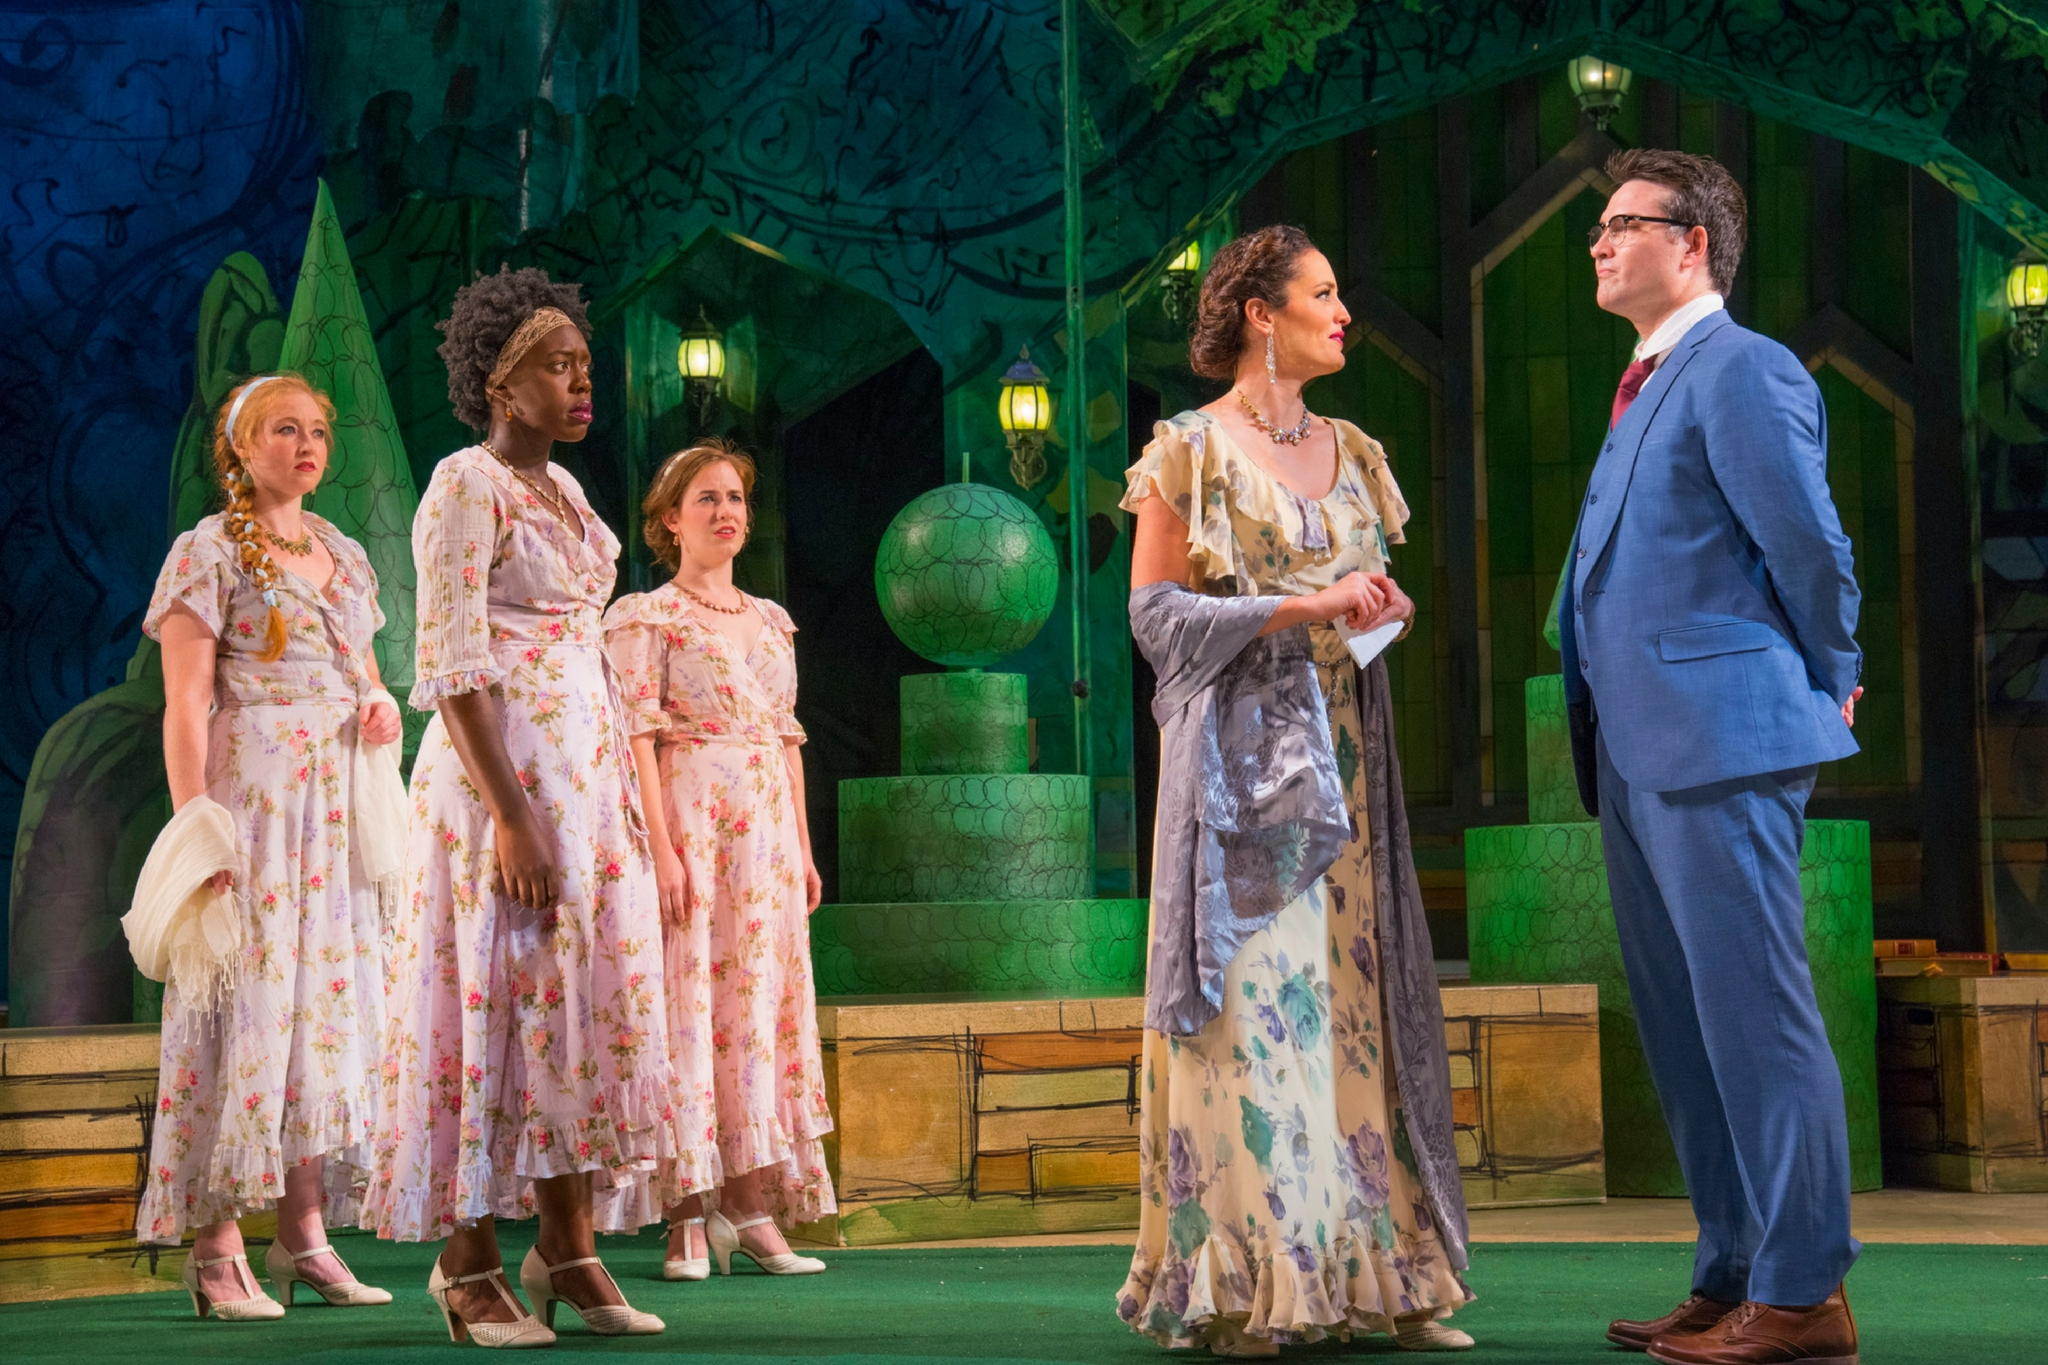 Jes Bedwinek (Maria), Obehi Janice (Rosaline), Margaret Clark (Katharine), Jennifer Ellis (Princess of France), and Justin Blanchard (King of Navarre) in Love's Labor's Lost, Shakespeare on the Common 2016-Photo by Andrew Brilliant